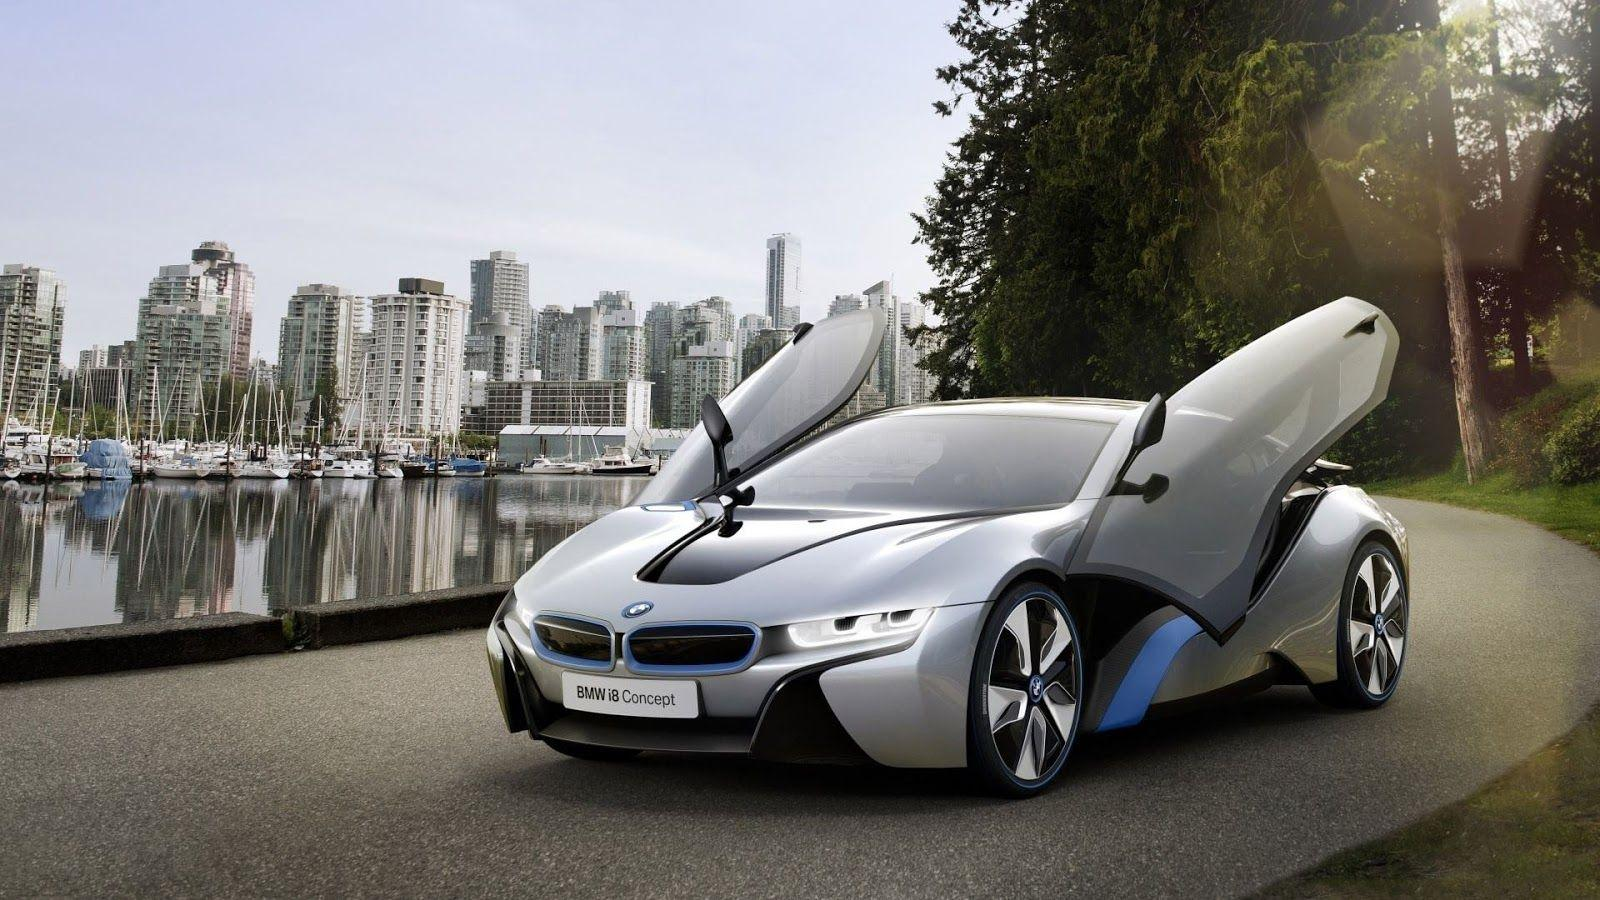 Bmw car photo wallpapers for free download about (892) wallpapers.